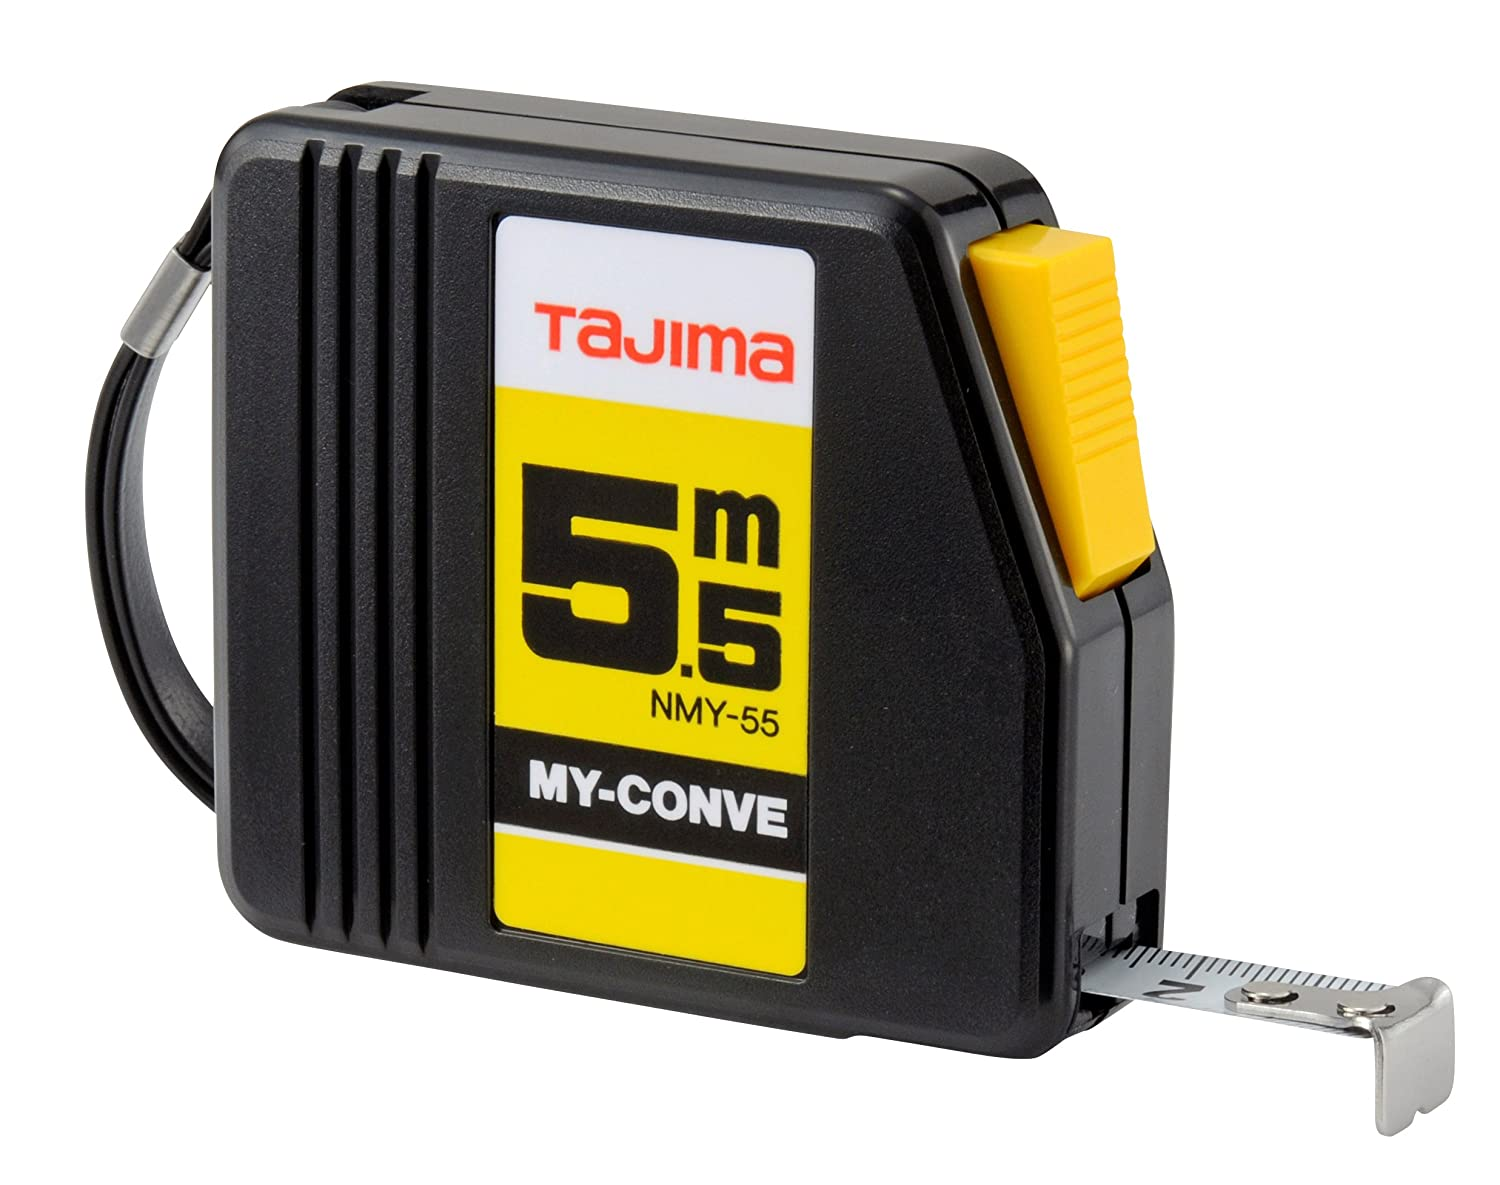 Tajima NMY50MY'My Conve' Measuring Tape with Auto-Stop, Black, 5 m x 13 mm